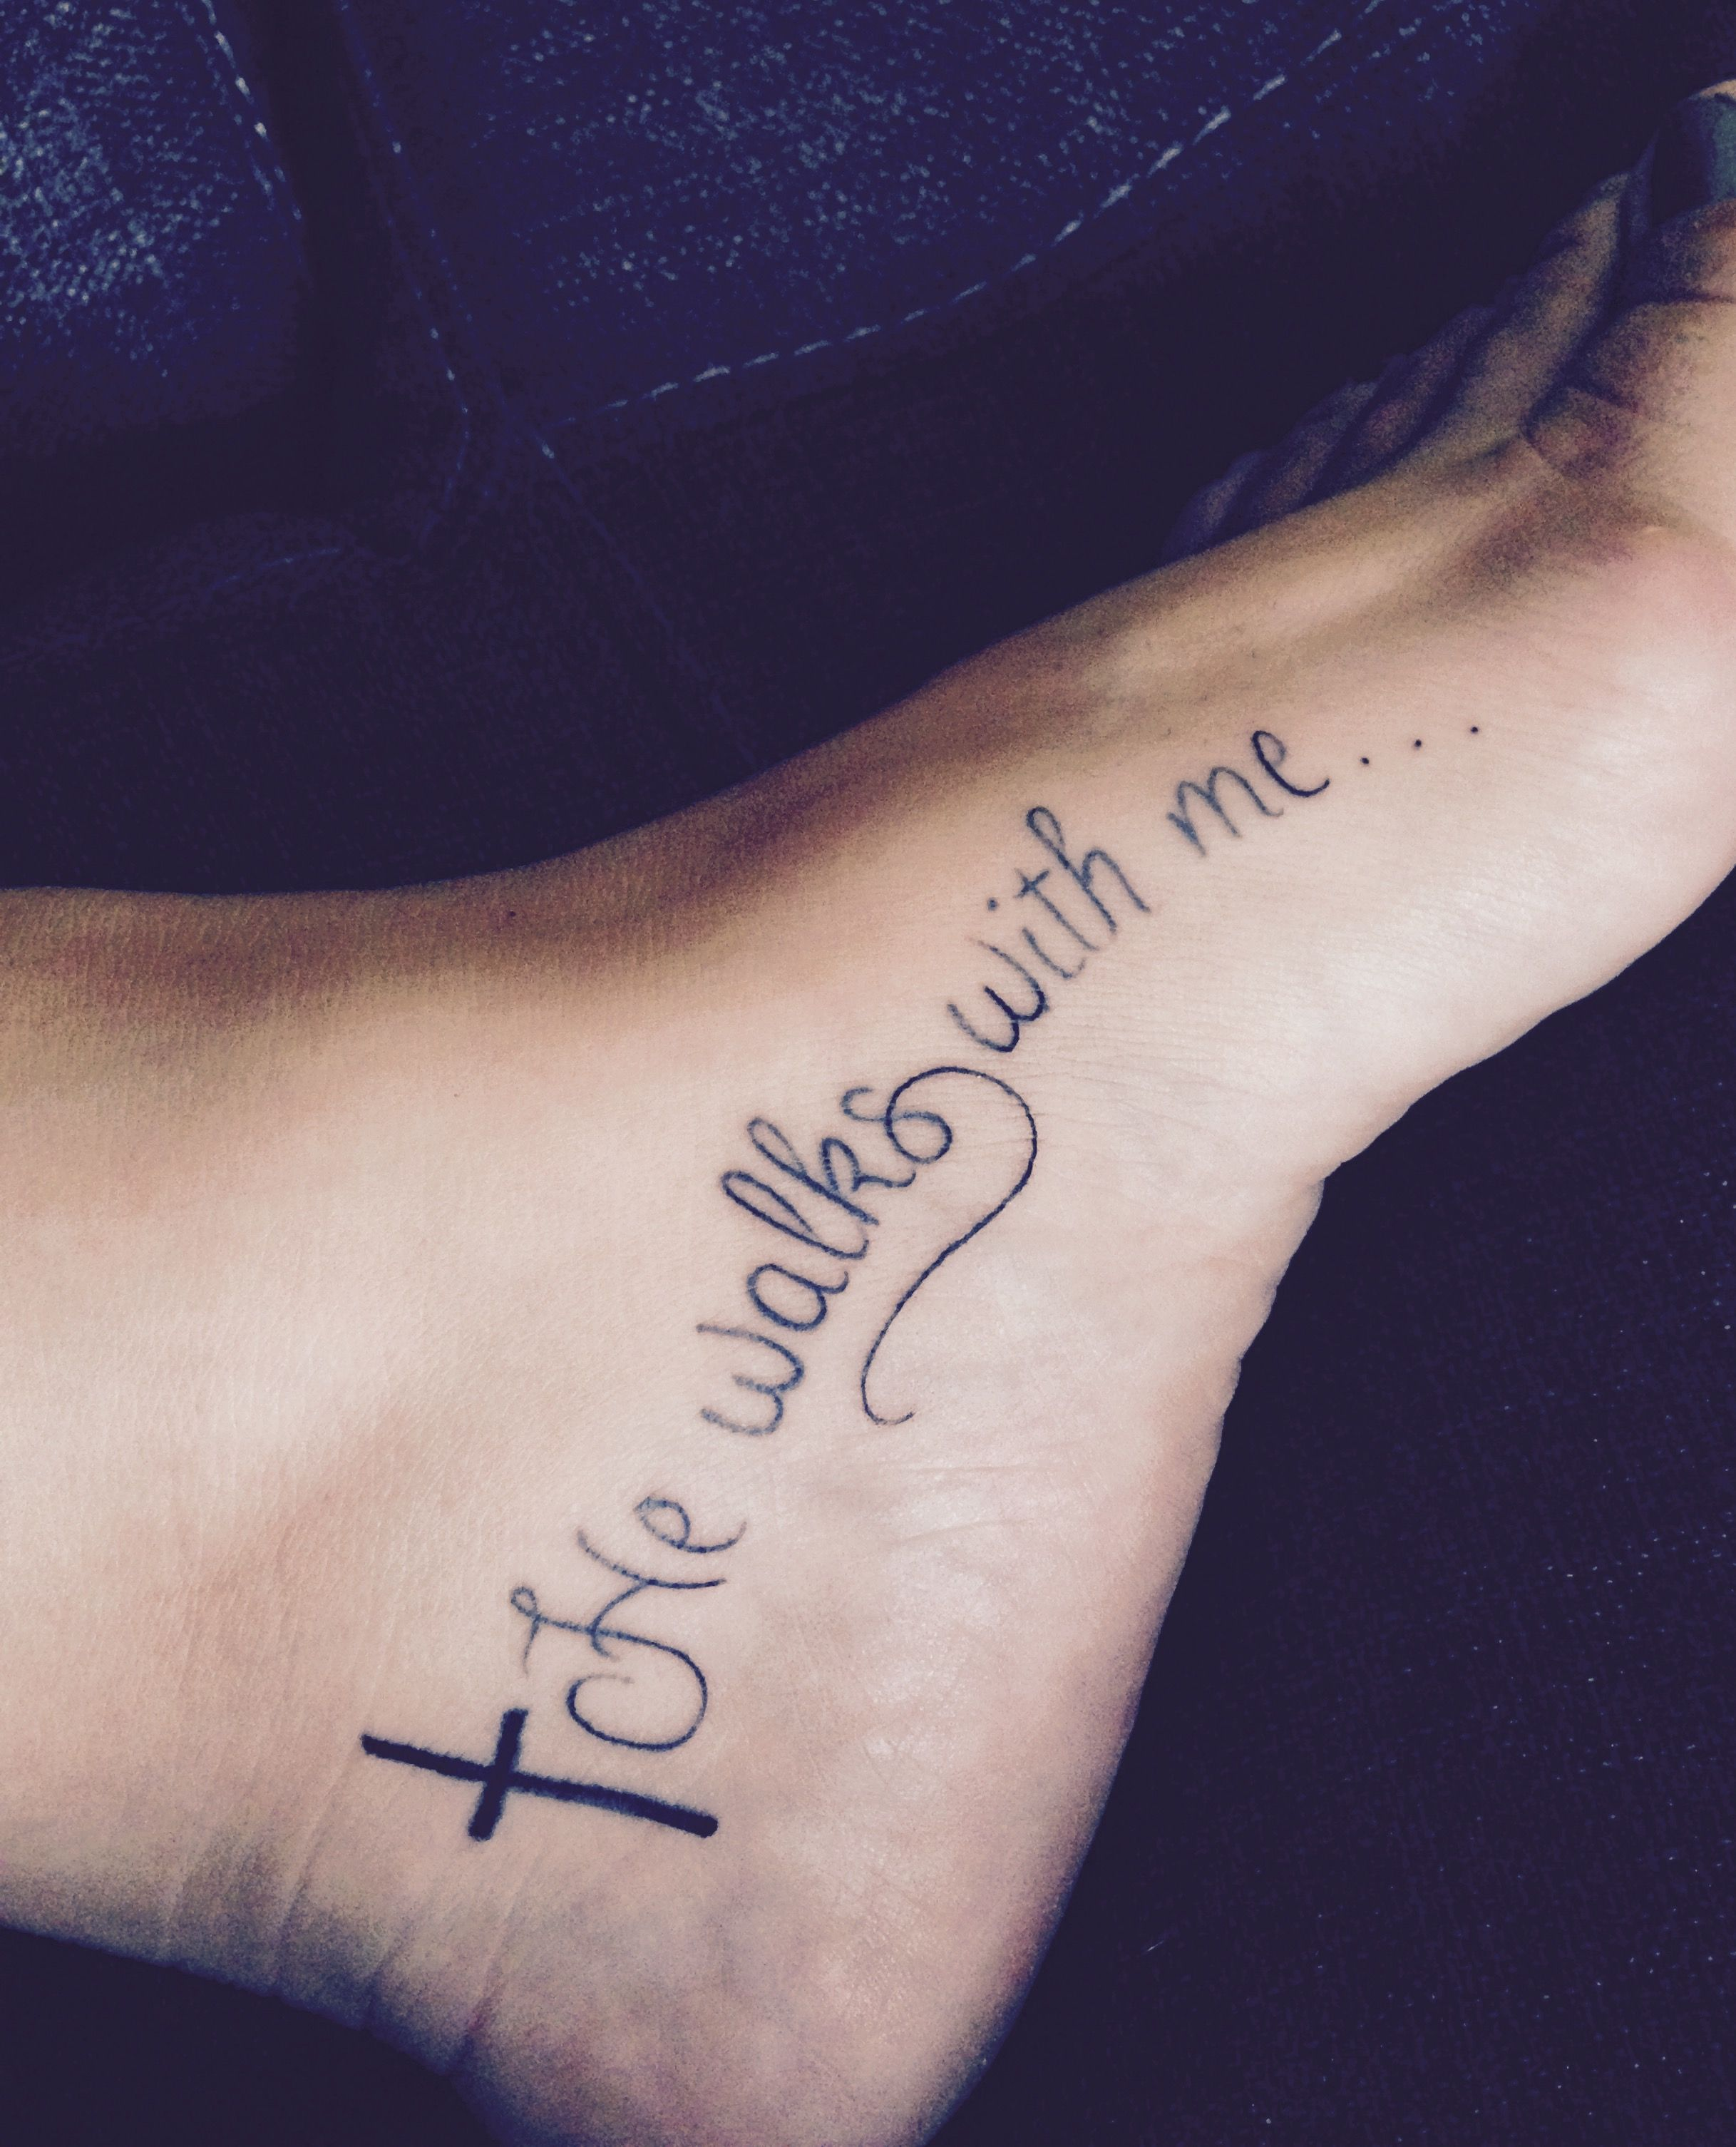 Tattoo Quotes With Cross: He Walks With Me Foot Tattoo